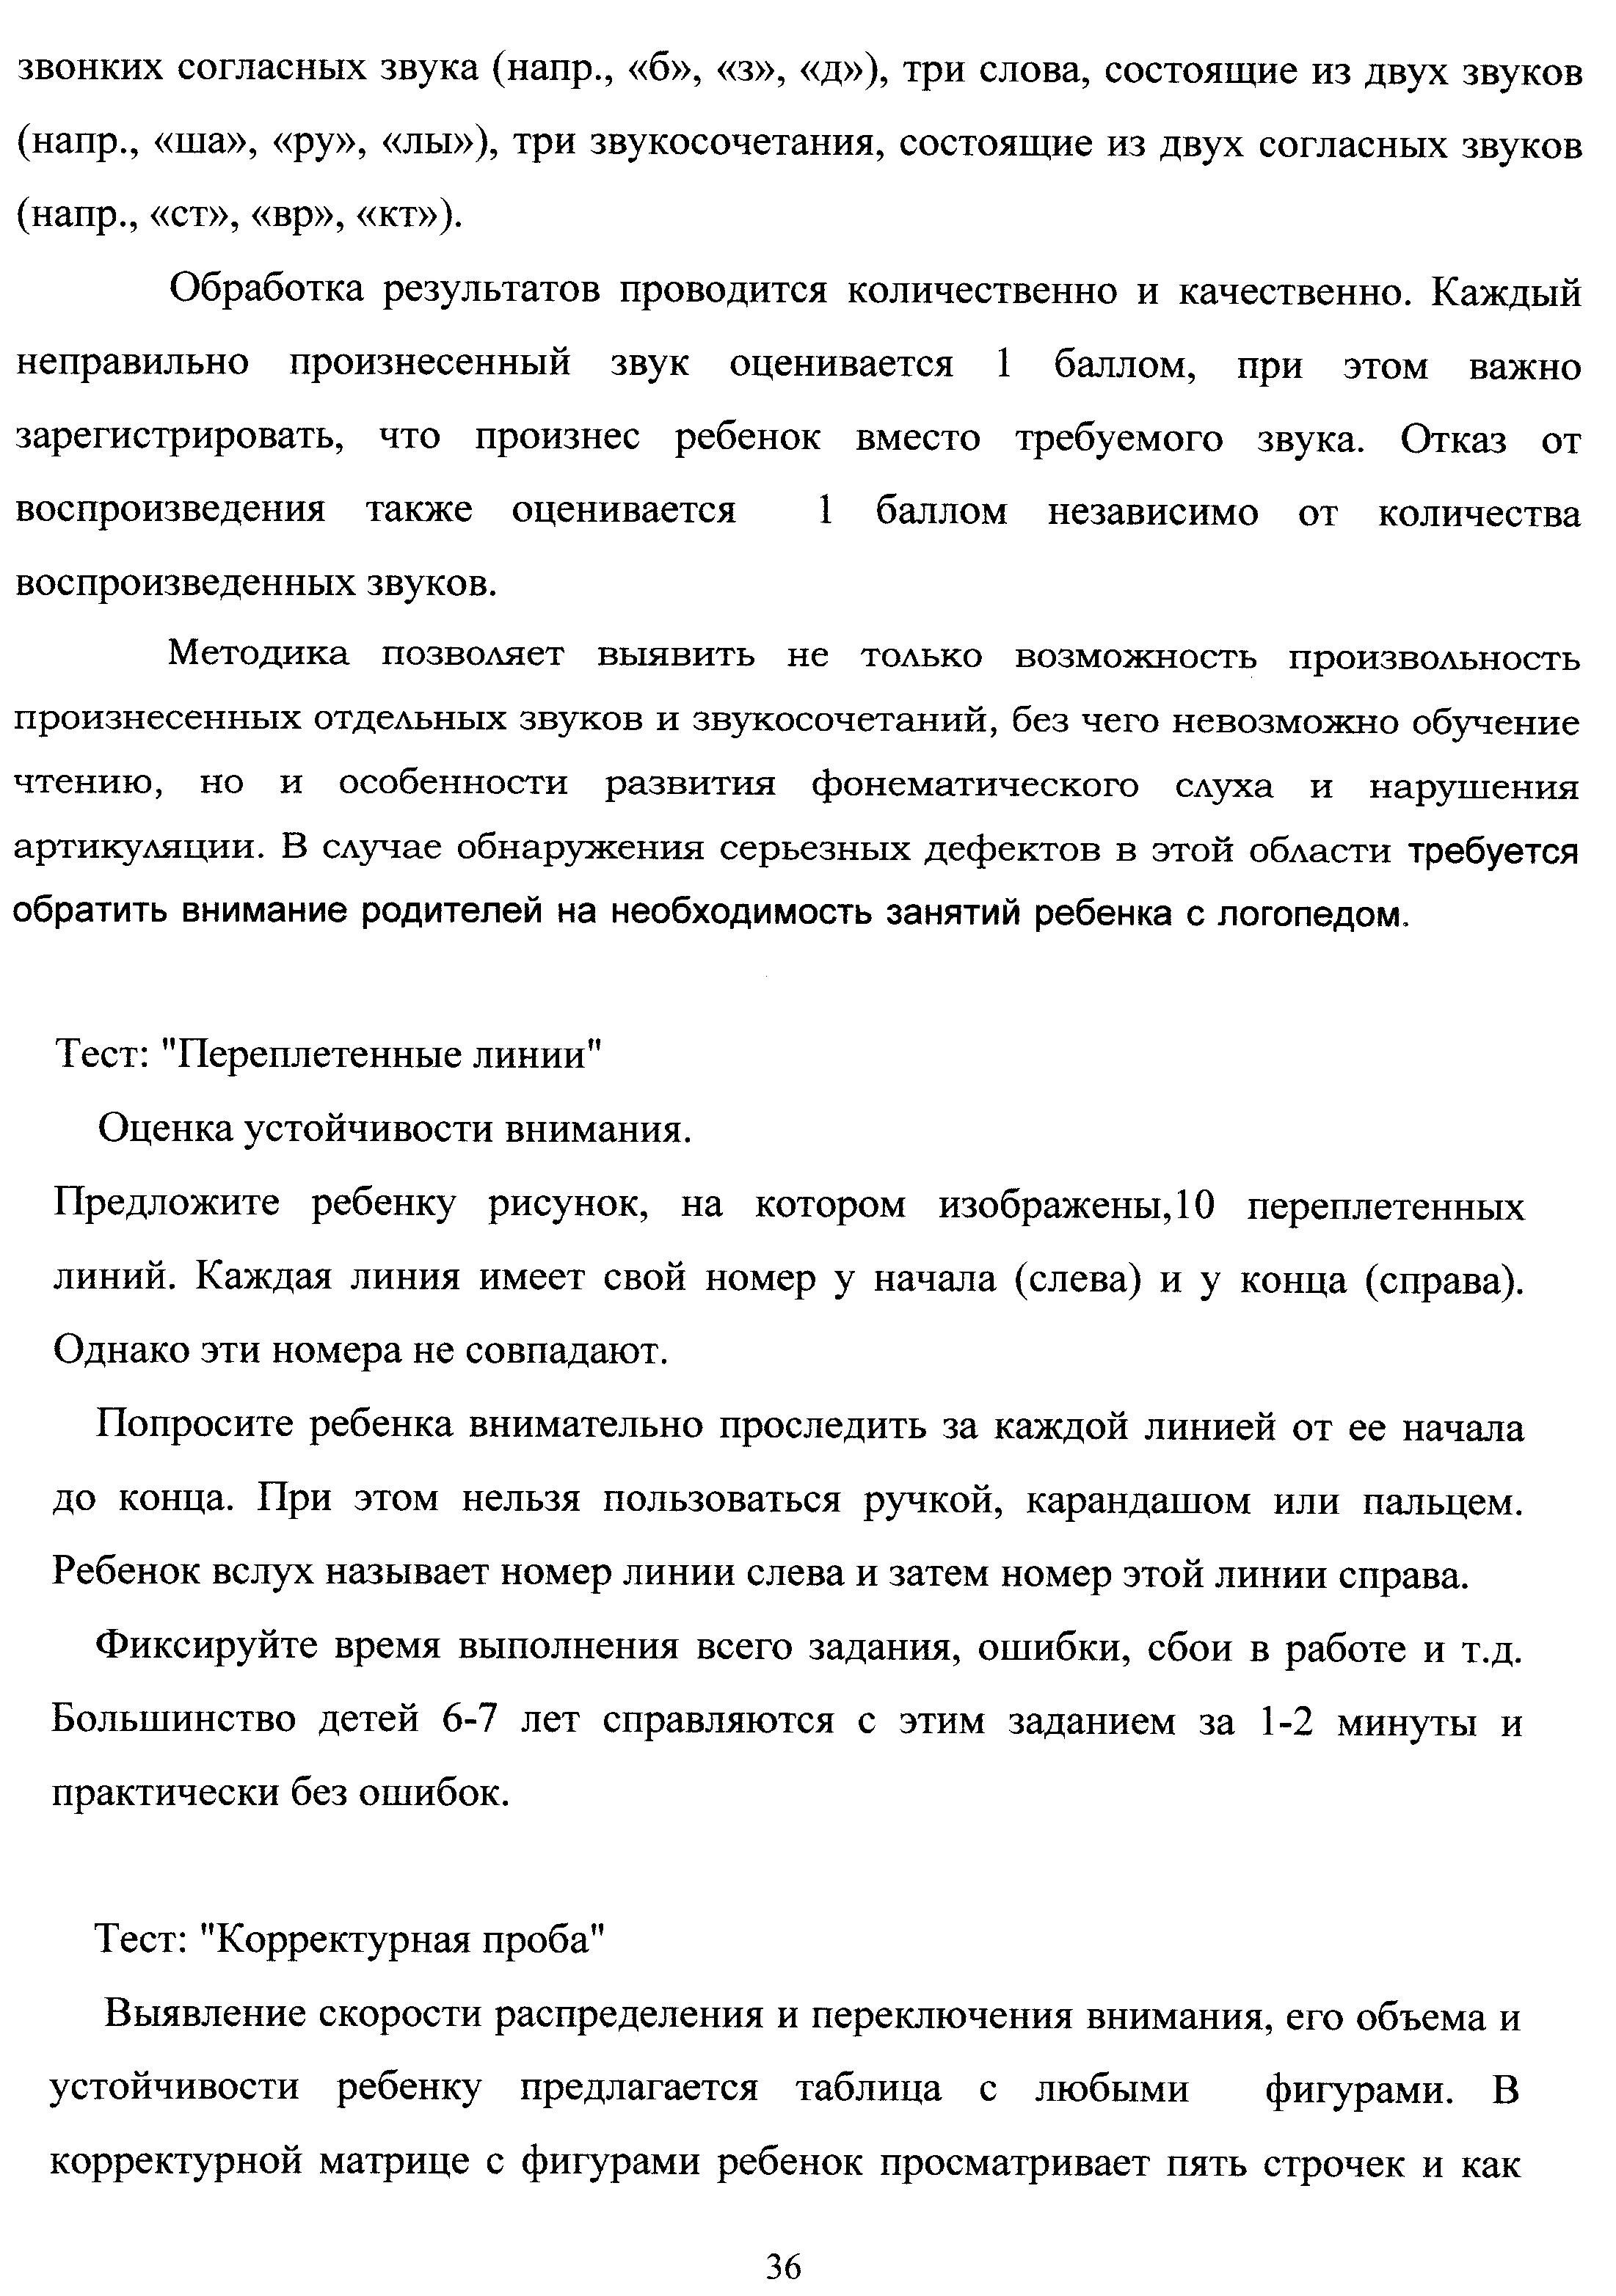 C:\Users\ЛАРИСА\Documents\Scanned Documents\Рисунок (140).jpg